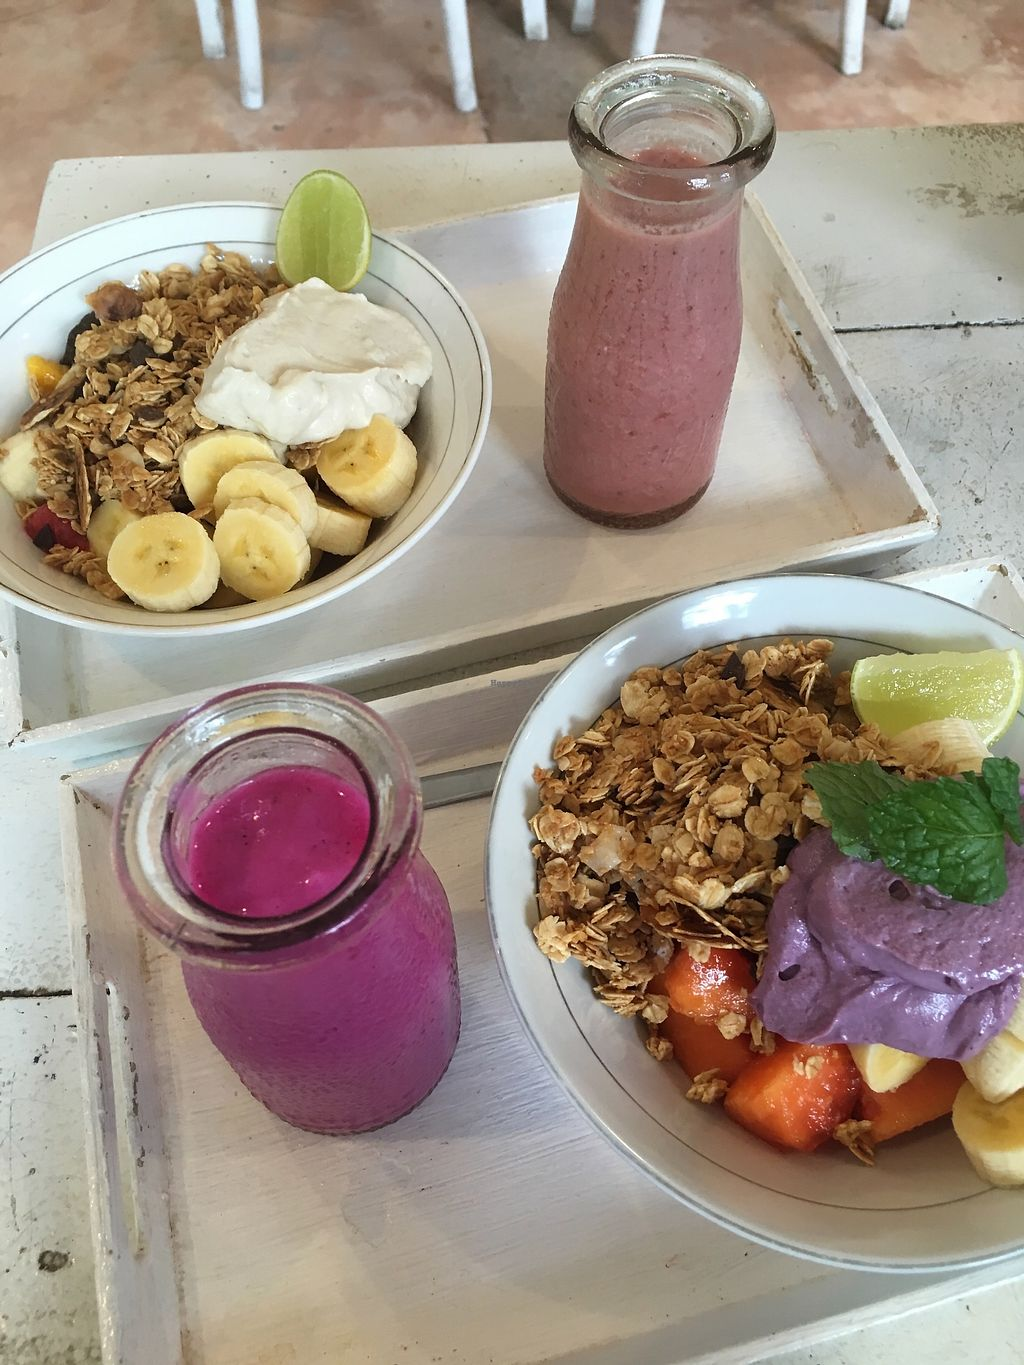 """Photo of Alchemy  by <a href=""""/members/profile/jojoinbrighton"""">jojoinbrighton</a> <br/>Smoothie bowls <br/> August 15, 2017  - <a href='/contact/abuse/image/28110/292852'>Report</a>"""